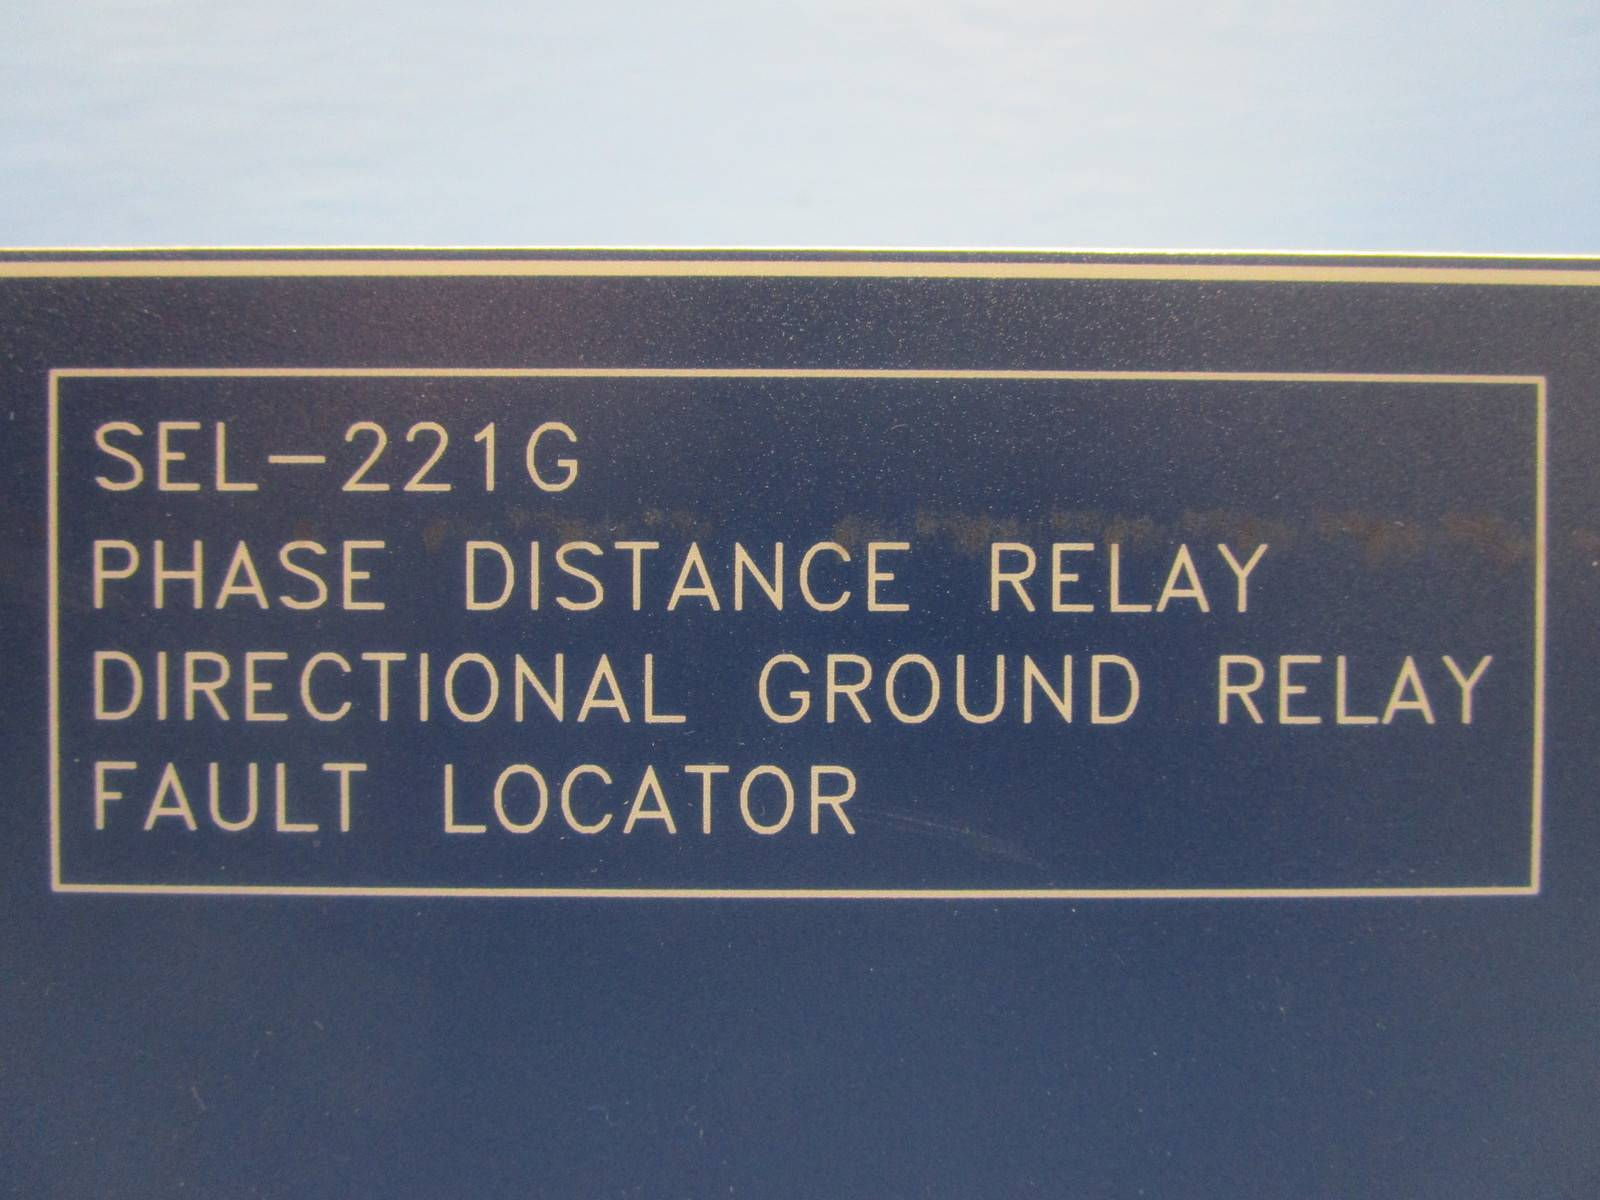 Ground Fault Locator : Schweitzer engineering sel g phase distance ground